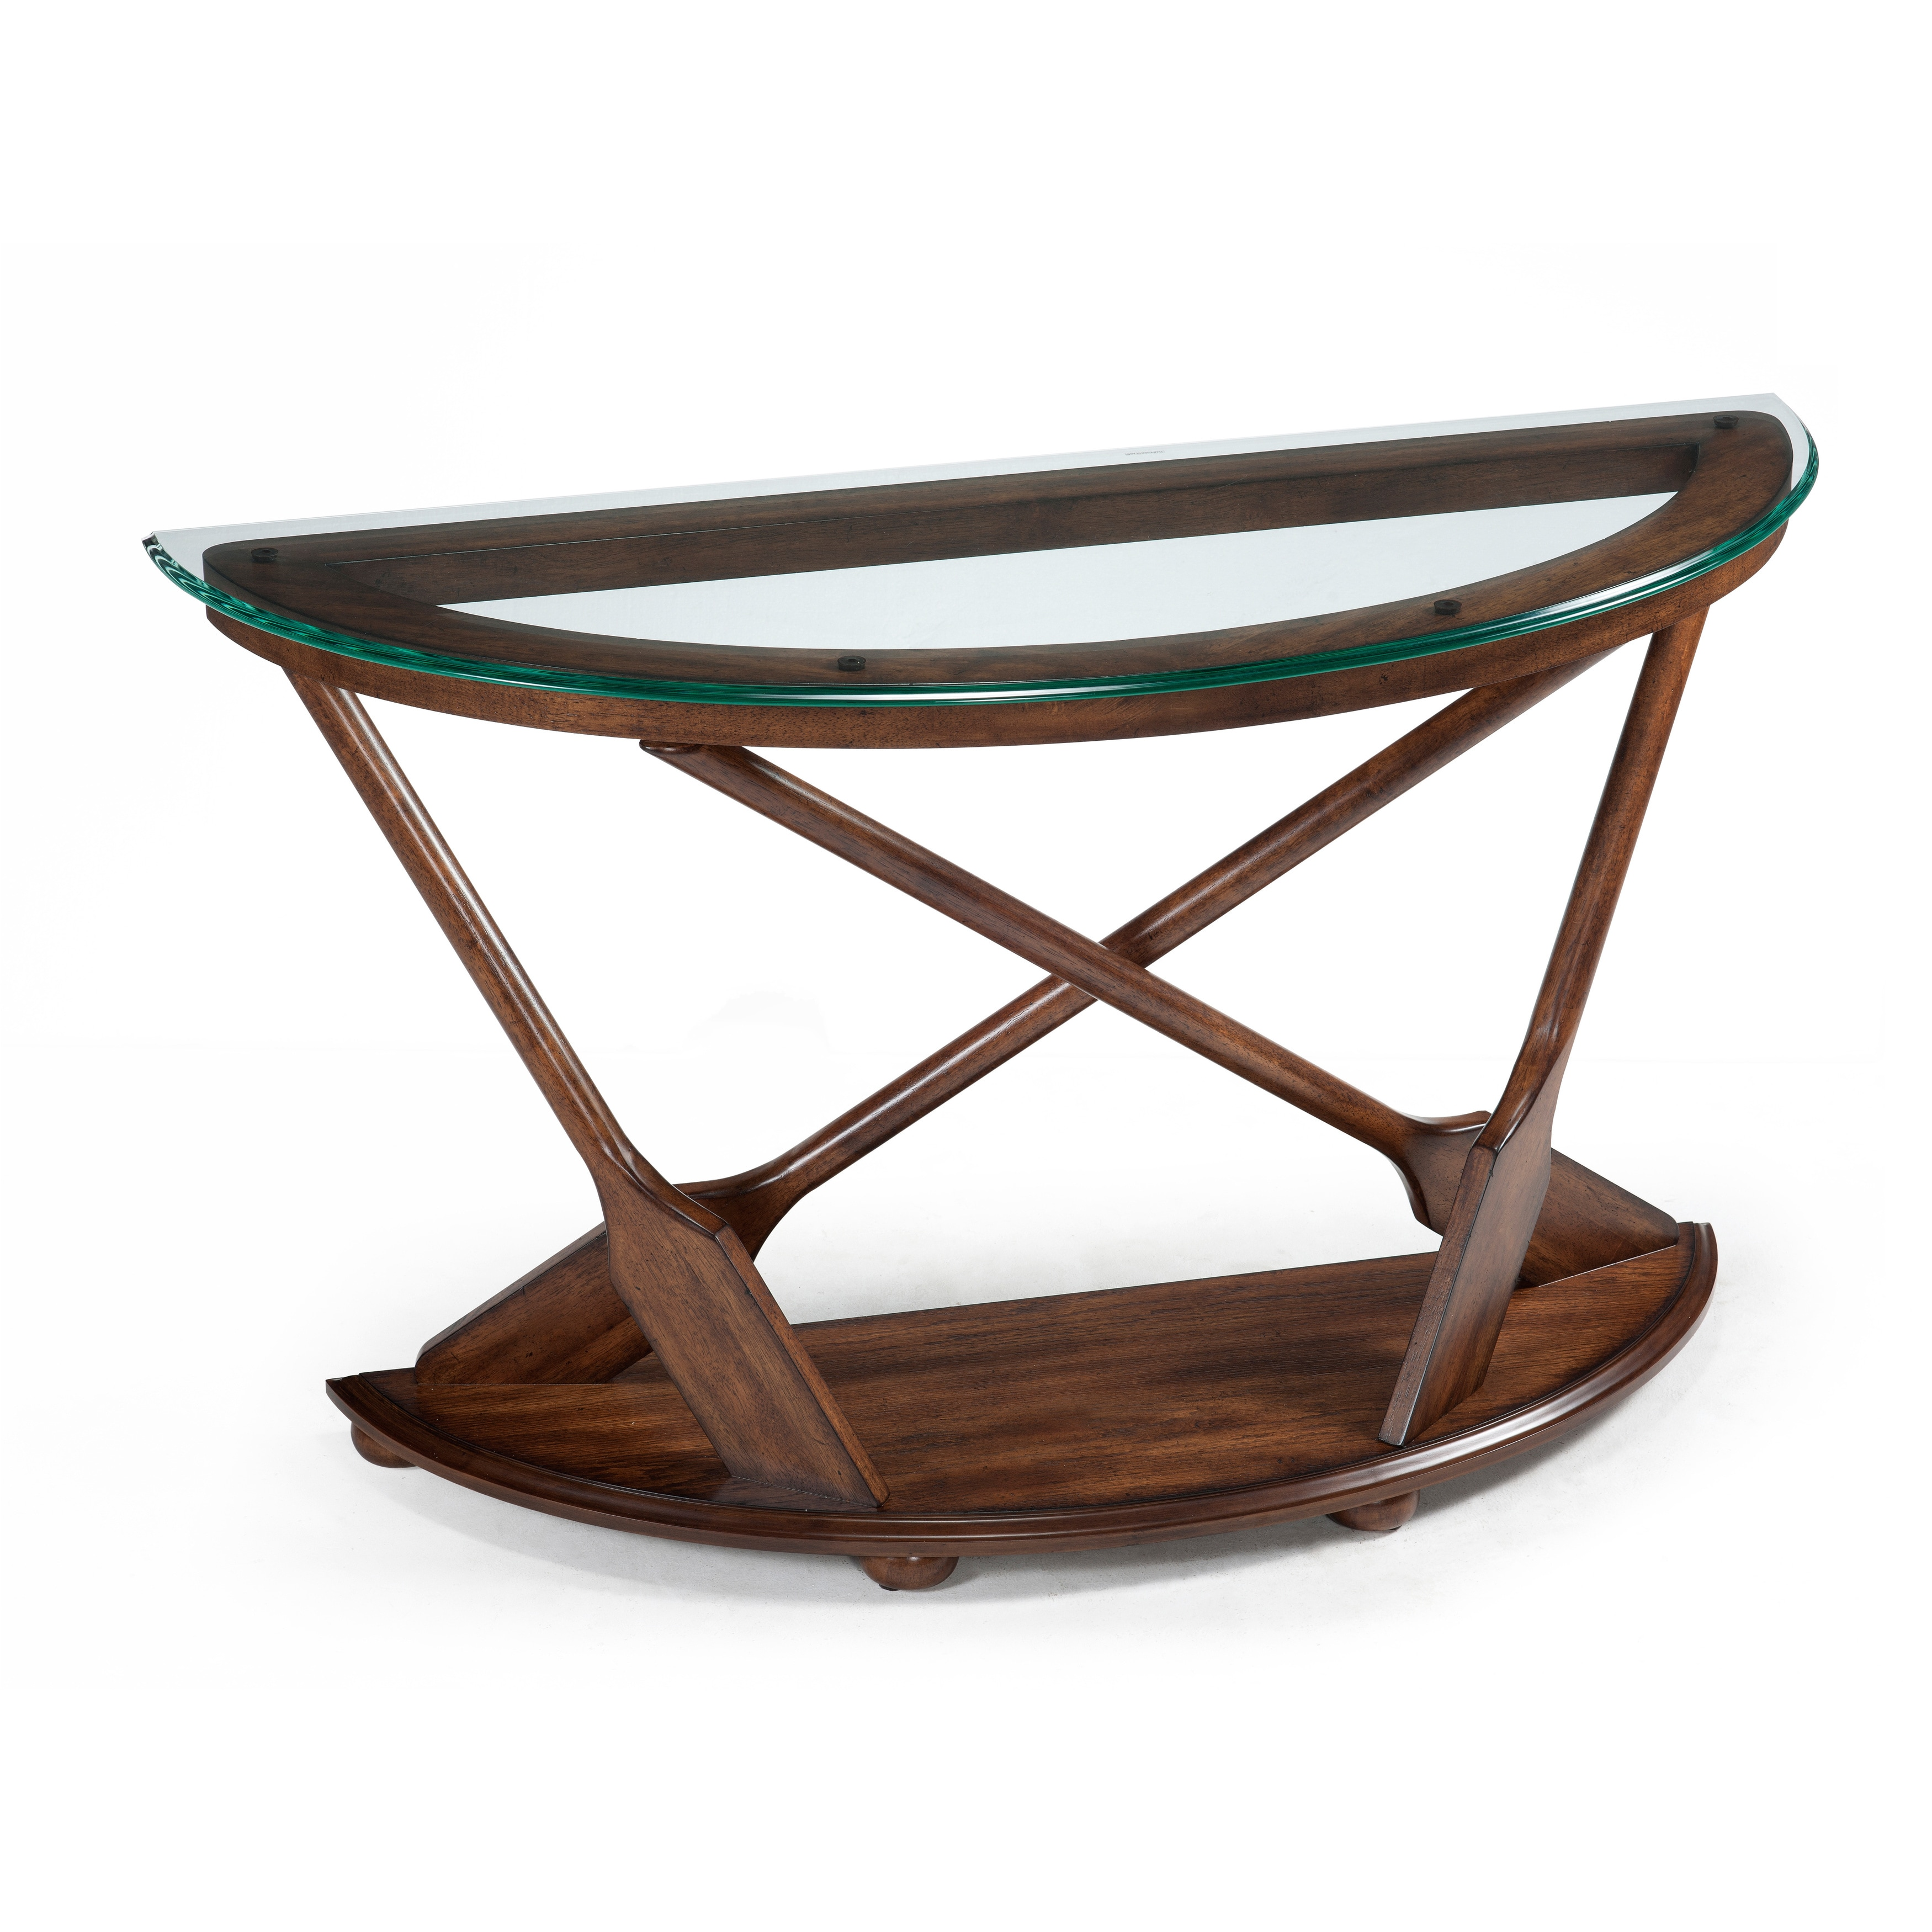 beafort nautical dark oak oar framed console table magnussen beaufort demilune sofa bedford jute rope accent ships white bookshelf target patio clearance pier one imports dining